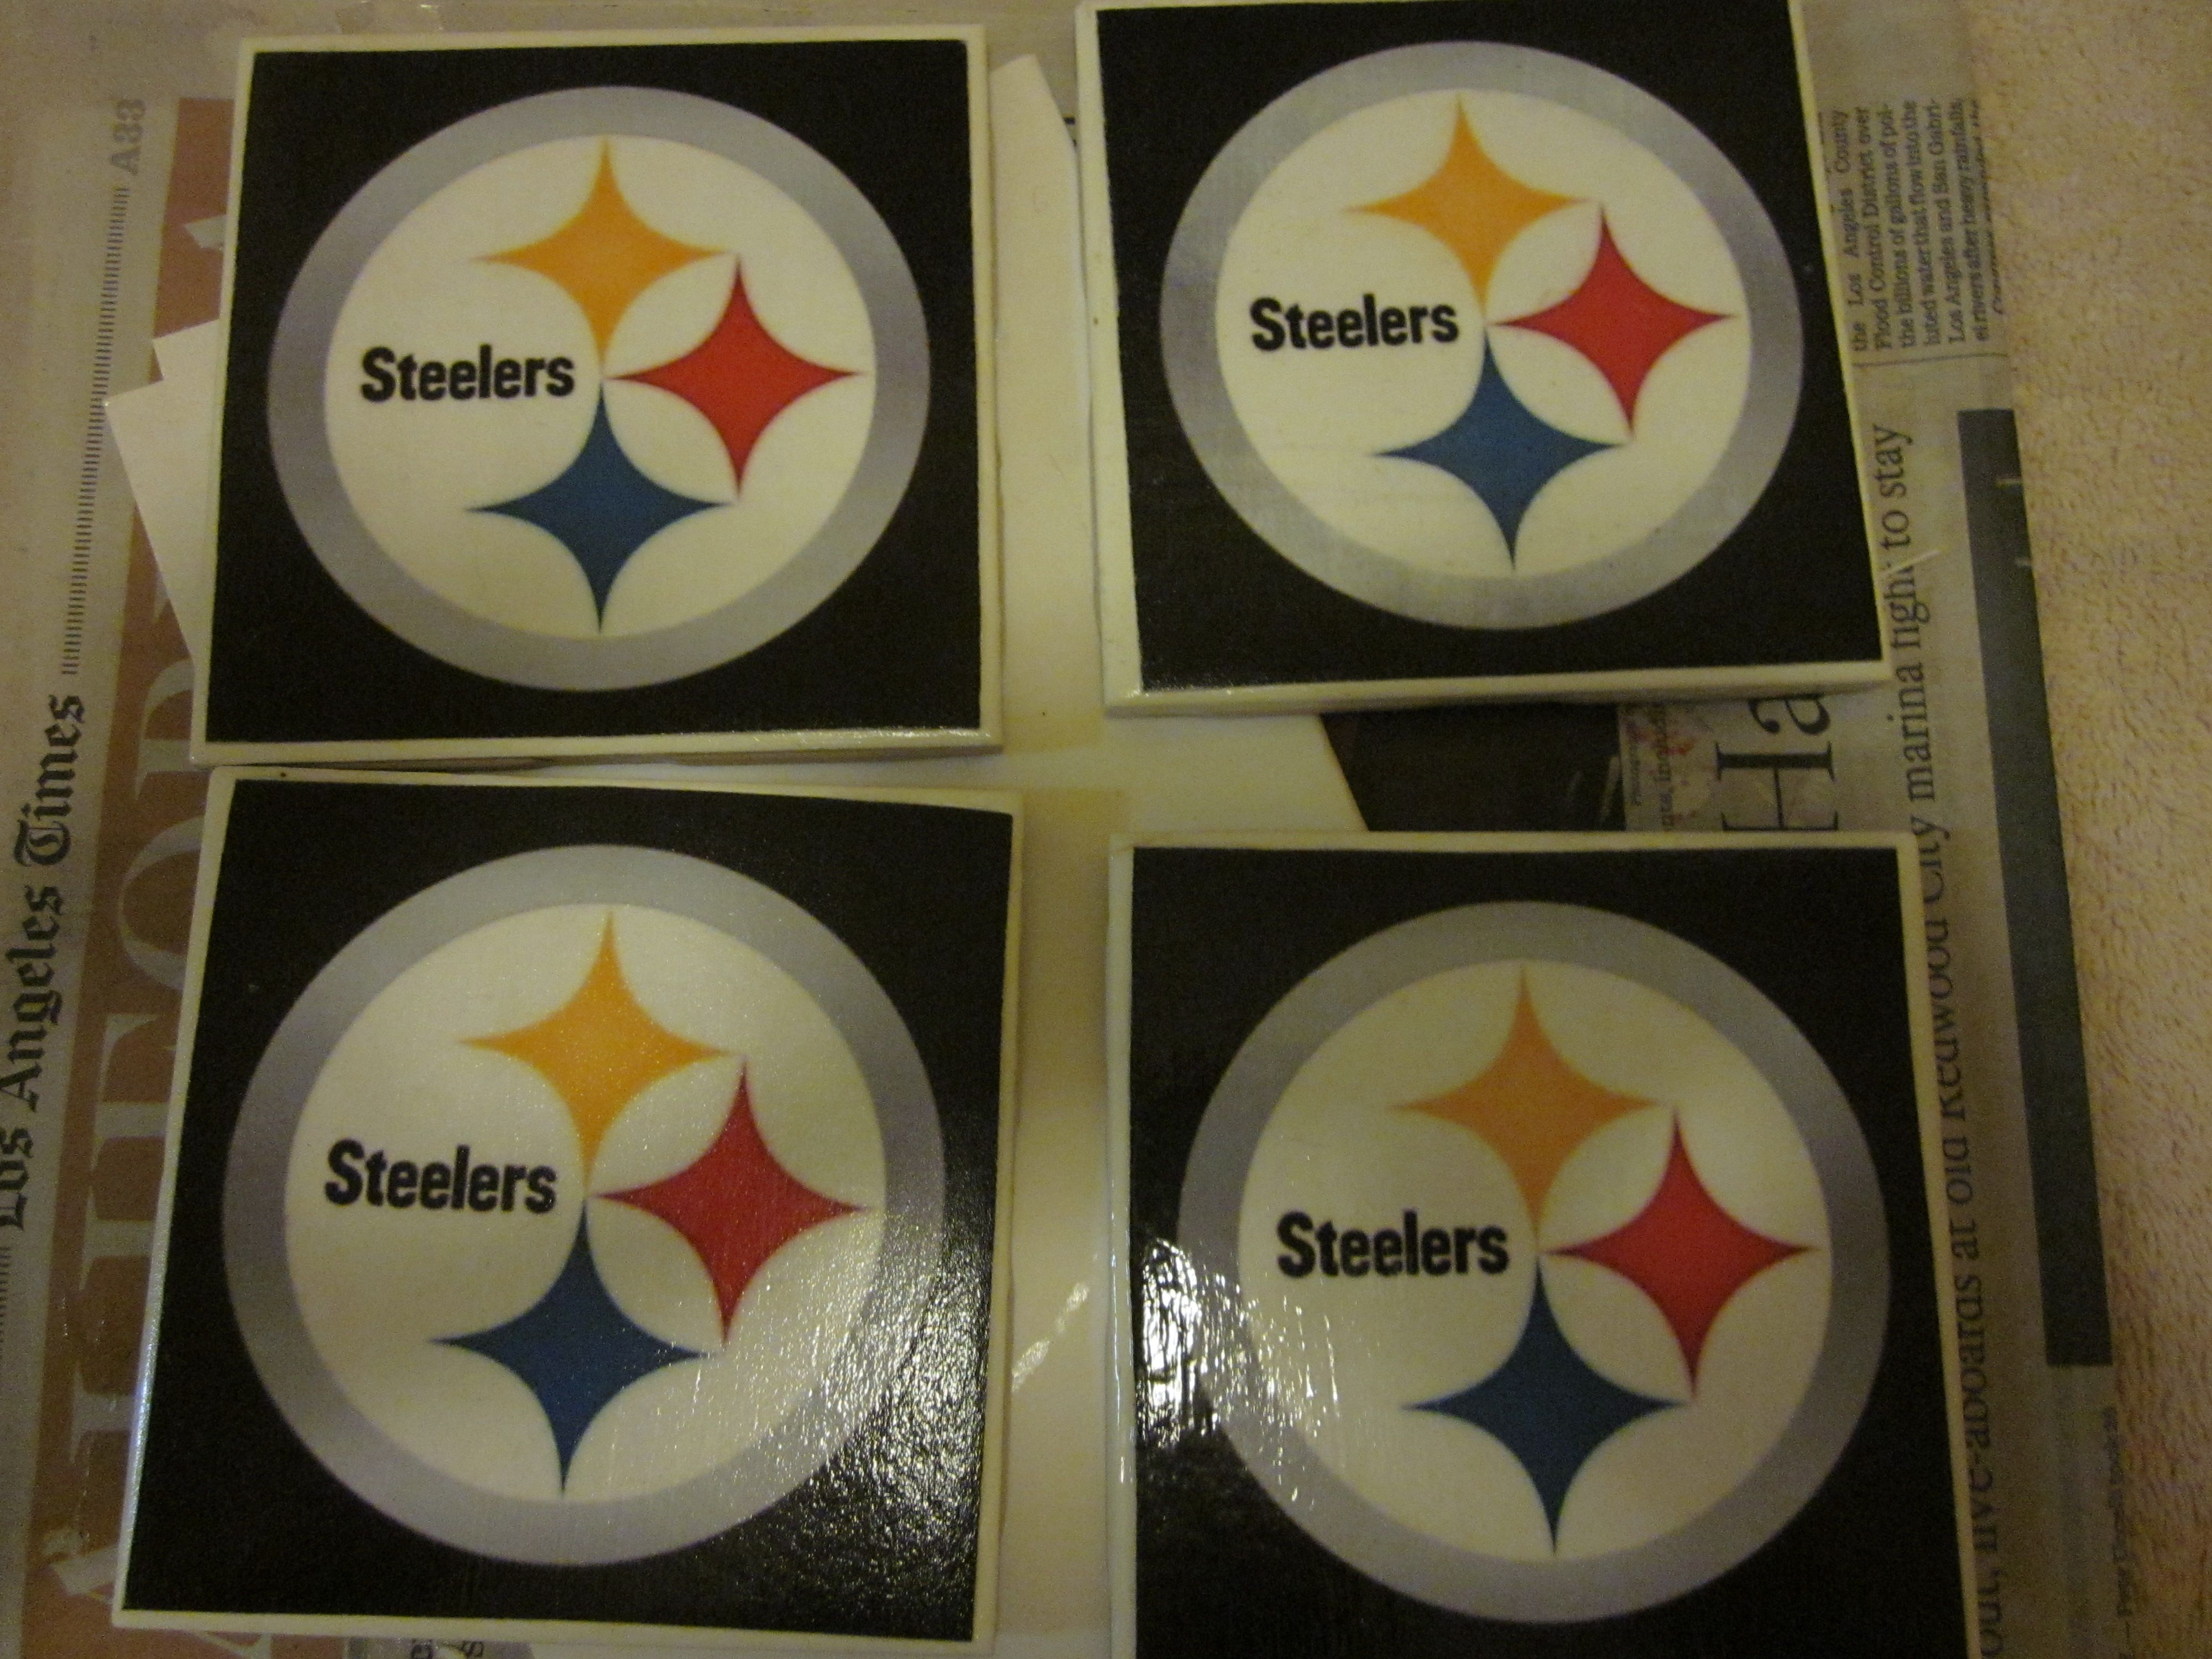 Steelers coasters made from ceramic tile steeler logo print out steelers coasters made from ceramic tile steeler logo print out modge clear coat doublecrazyfo Gallery